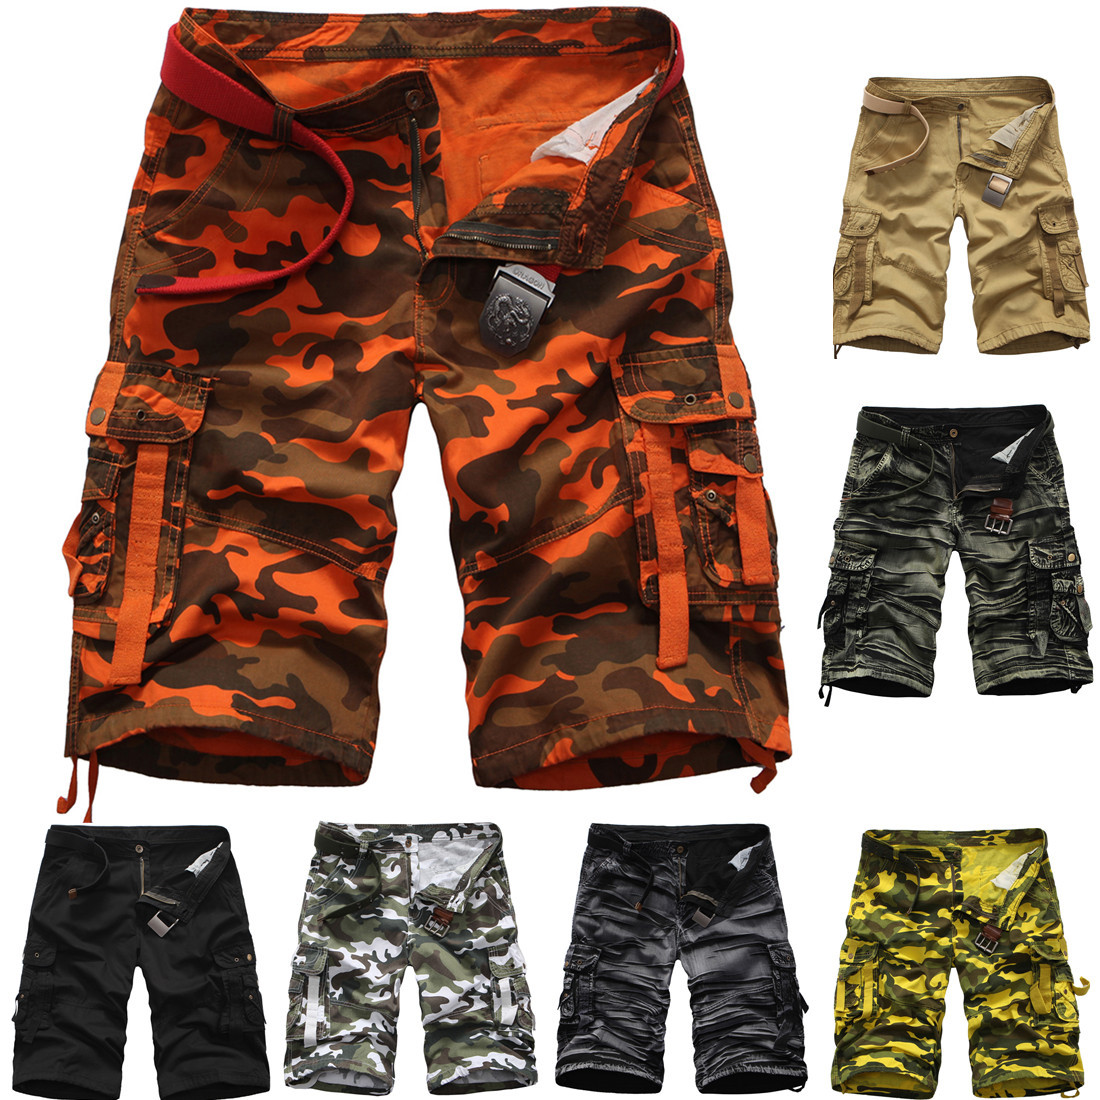 2019 New Style Summer Wear AliExpress MEN'S Overalls Camouflage Loose-Fit Short Shorts Pure G423